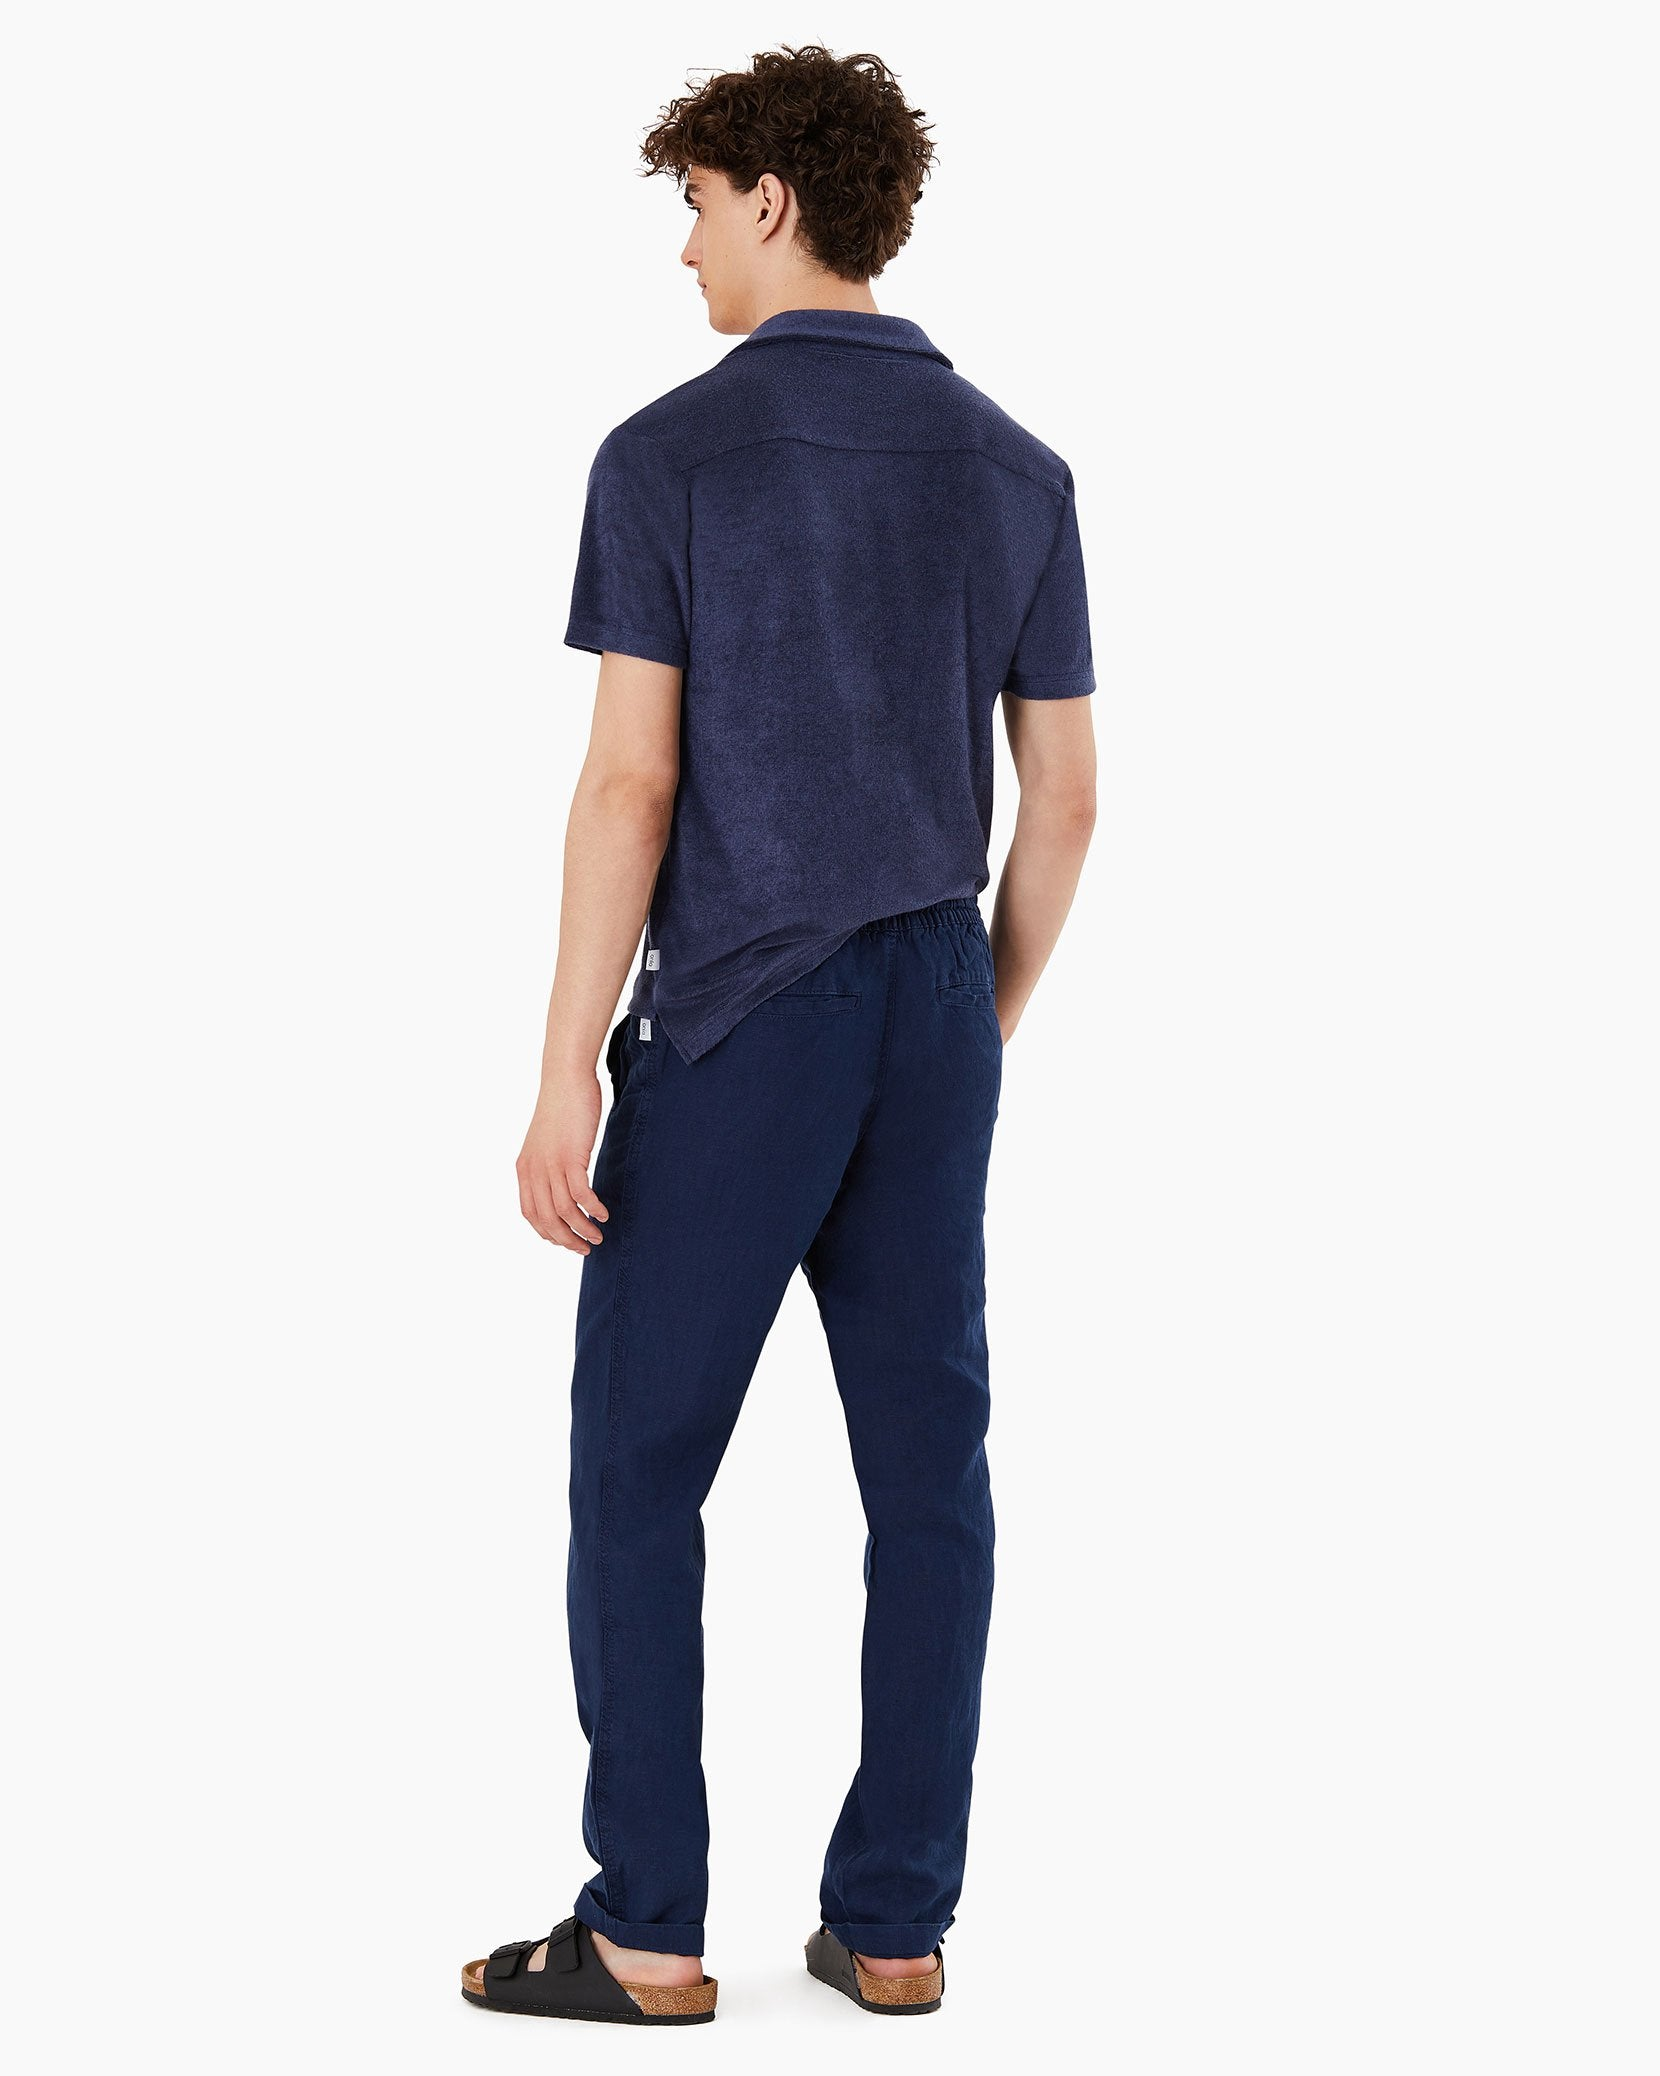 Collin Linen Pant in Deep Navy - 14 - Onia